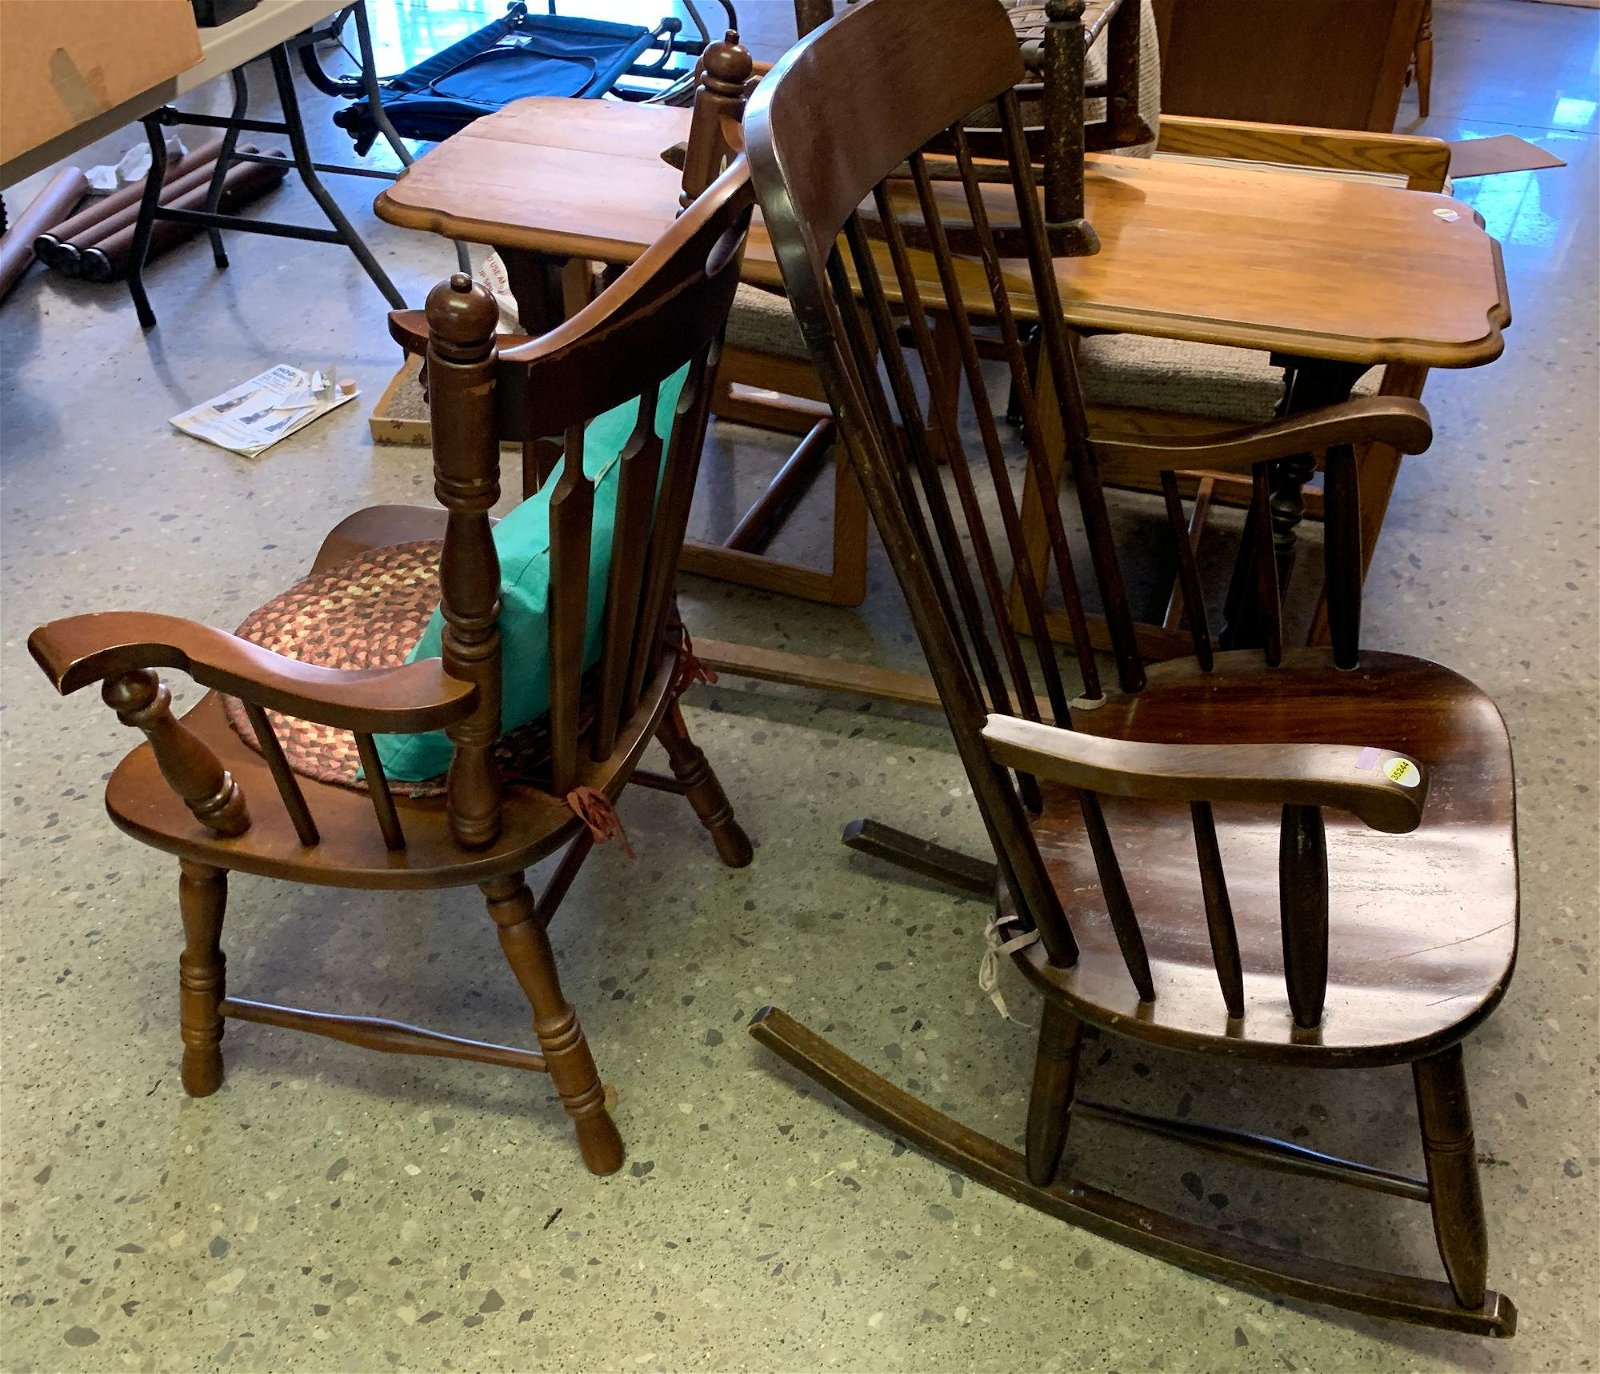 2 CHAIRS INCLUDING ROCKING CHAIR